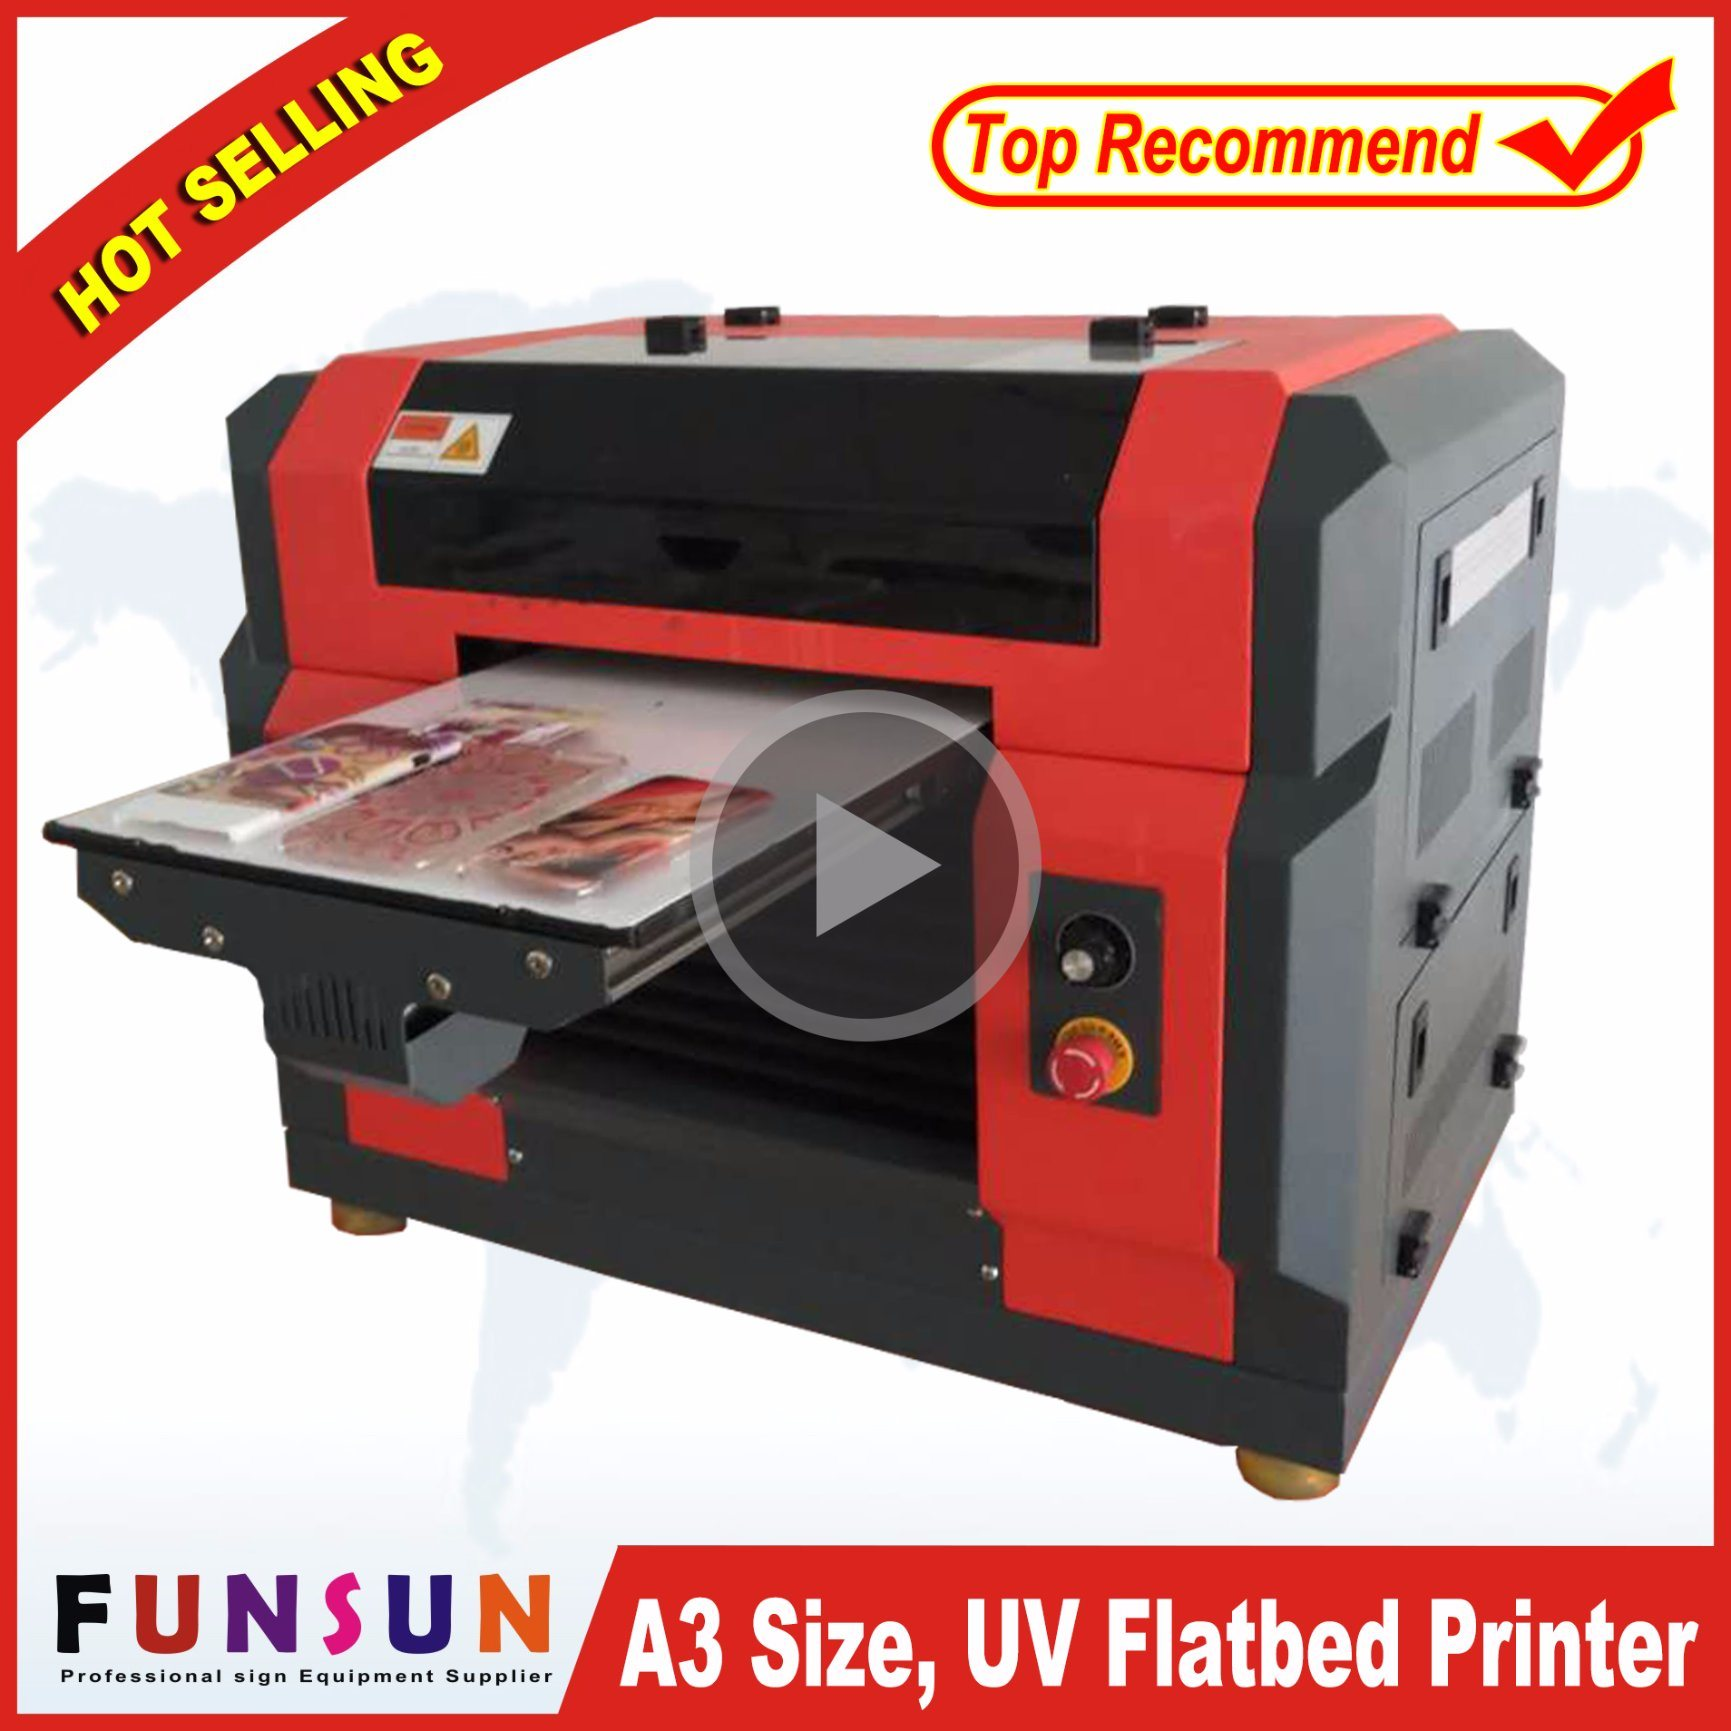 China high quality funsunjet a3 uv greeting cards printing machine high quality funsunjet a3 uv greeting cards printing machine m4hsunfo